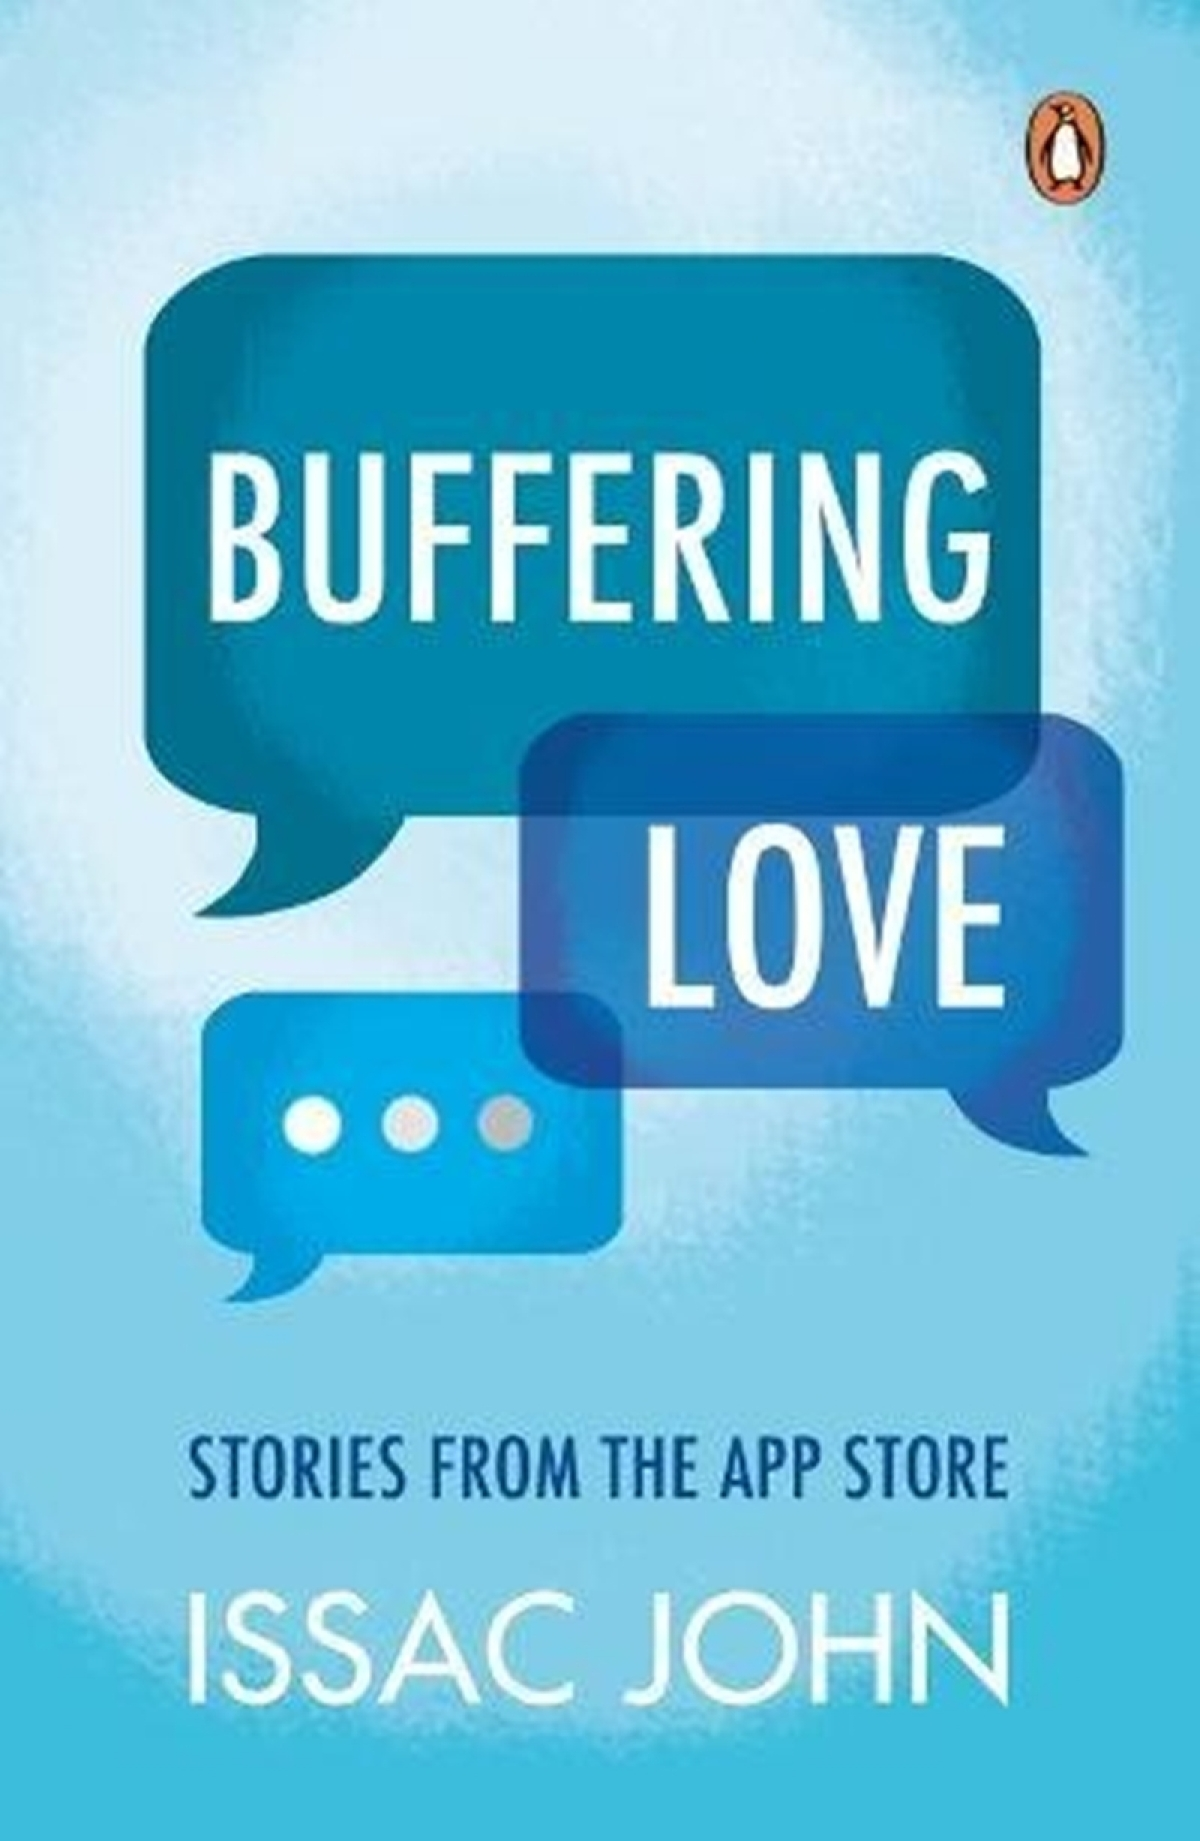 Buffering Love: Stories from the App Store by Issac John-Review